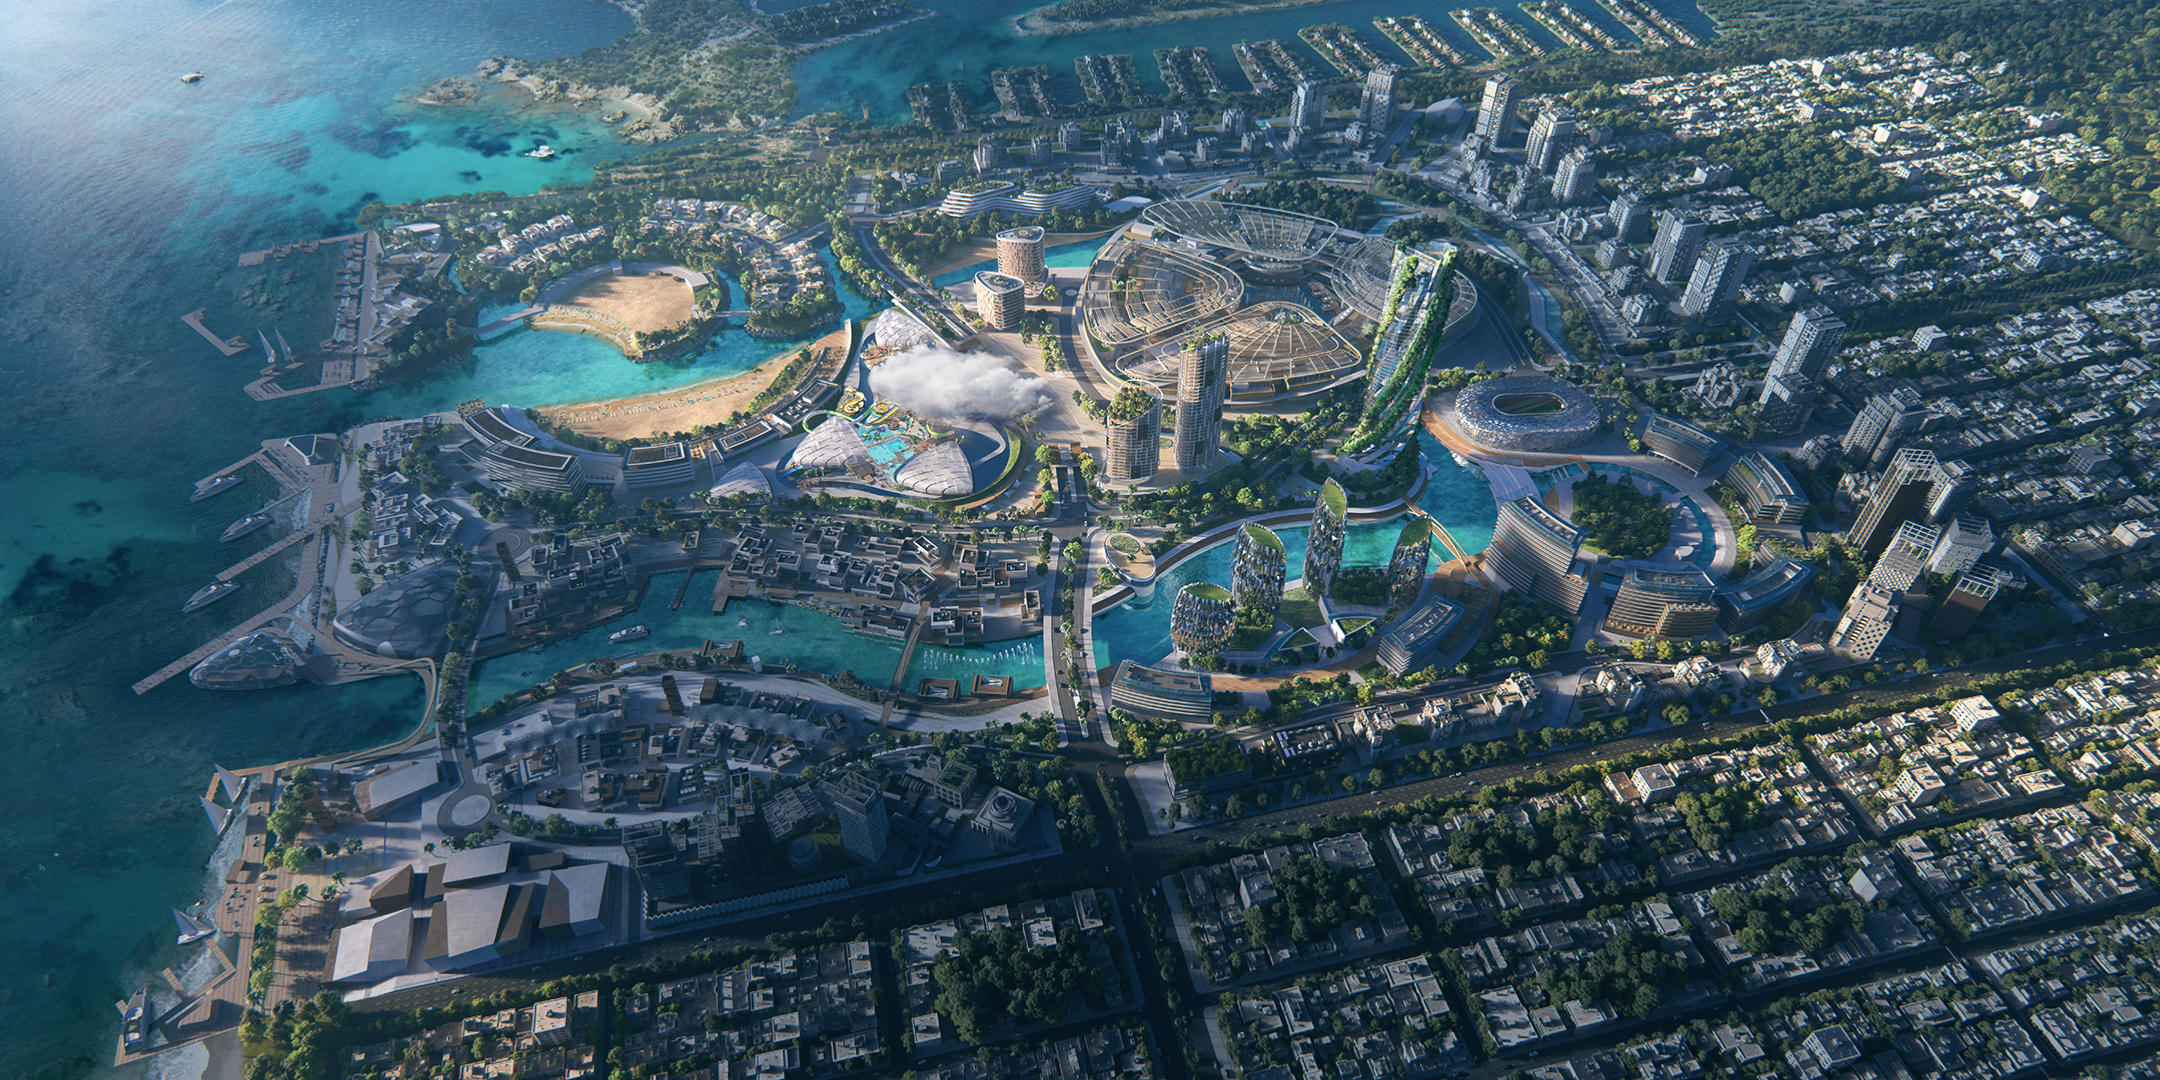 Massive 3D exterior aerial visualization of a to-be-built island megapolitan cityscape video